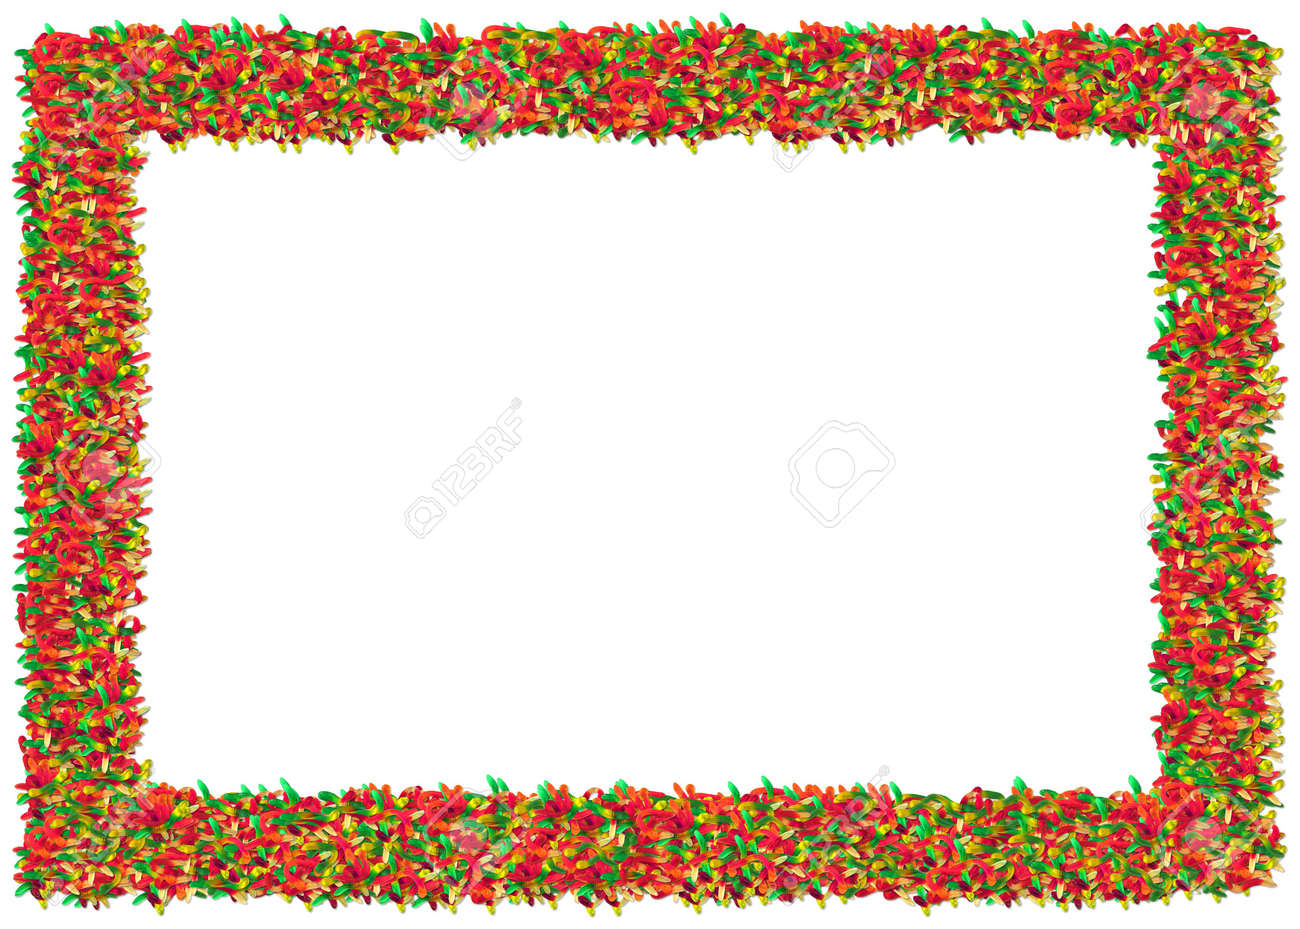 Gummy Worms Frame. From The Food Frames Series Stock Photo, Picture ...